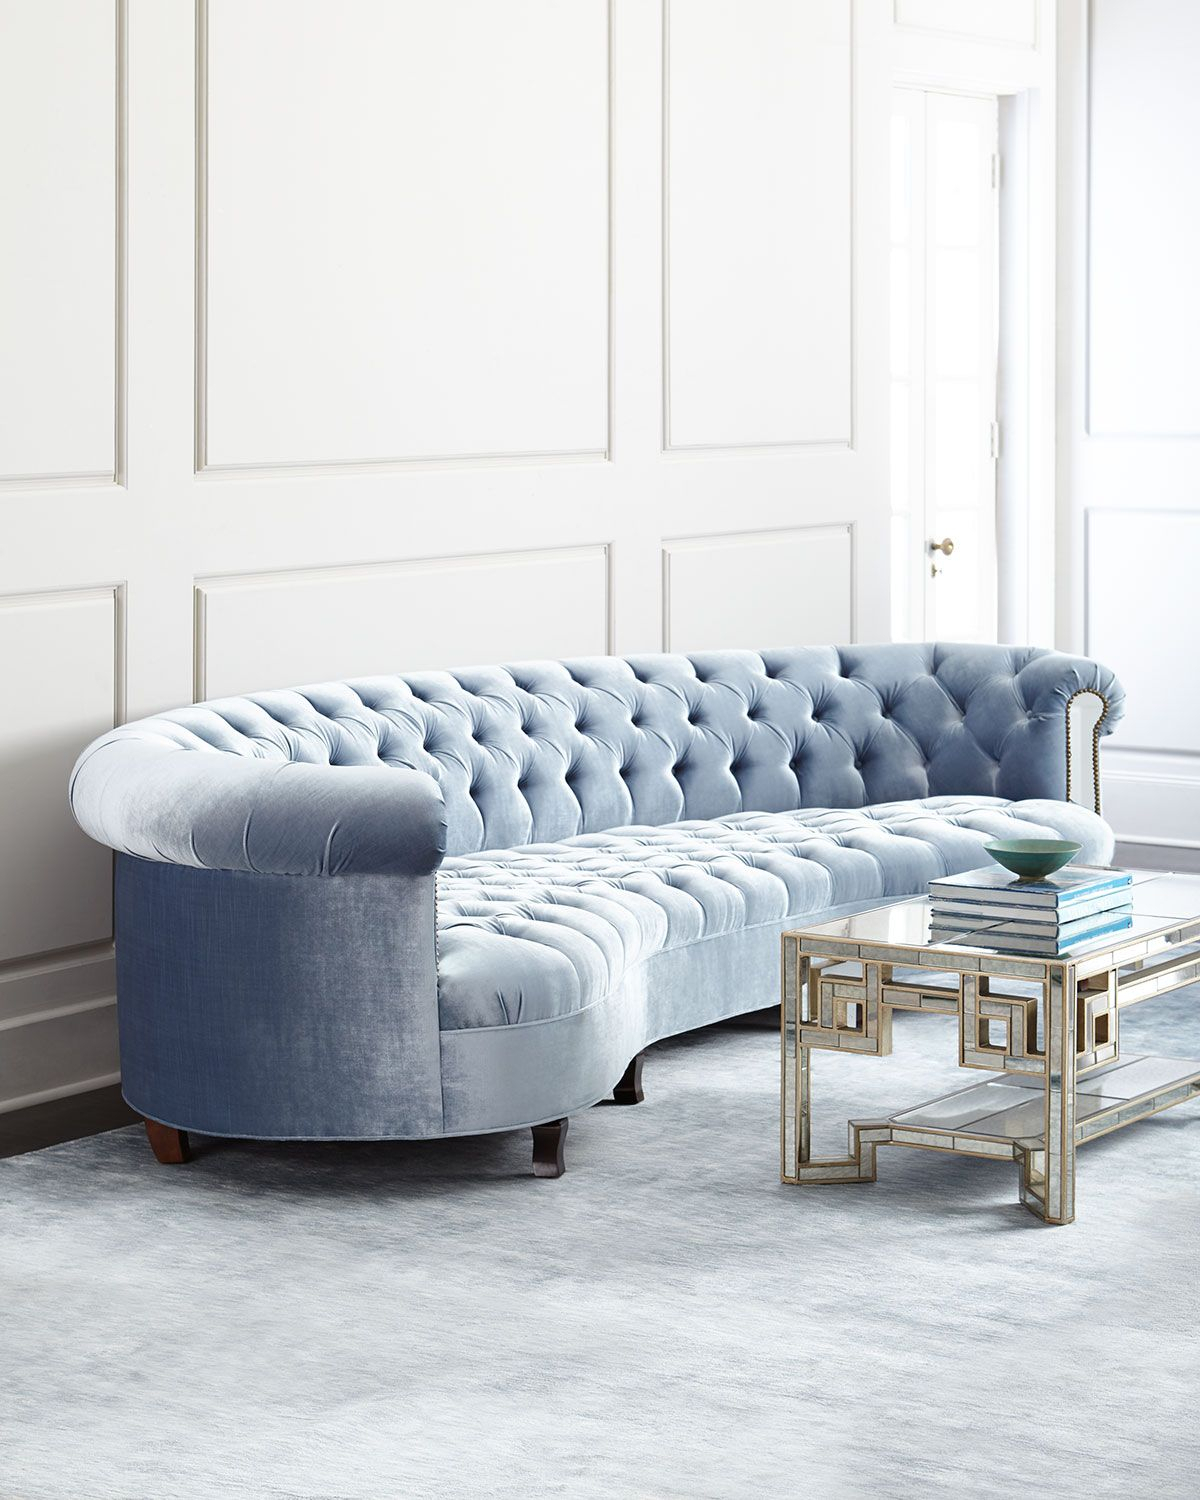 Rebecca Mirrored Sofa | Home Sweet Home | Pinterest | Sofa With Ames Arm Sofa Chairs By Nate Berkus And Jeremiah Brent (View 25 of 25)